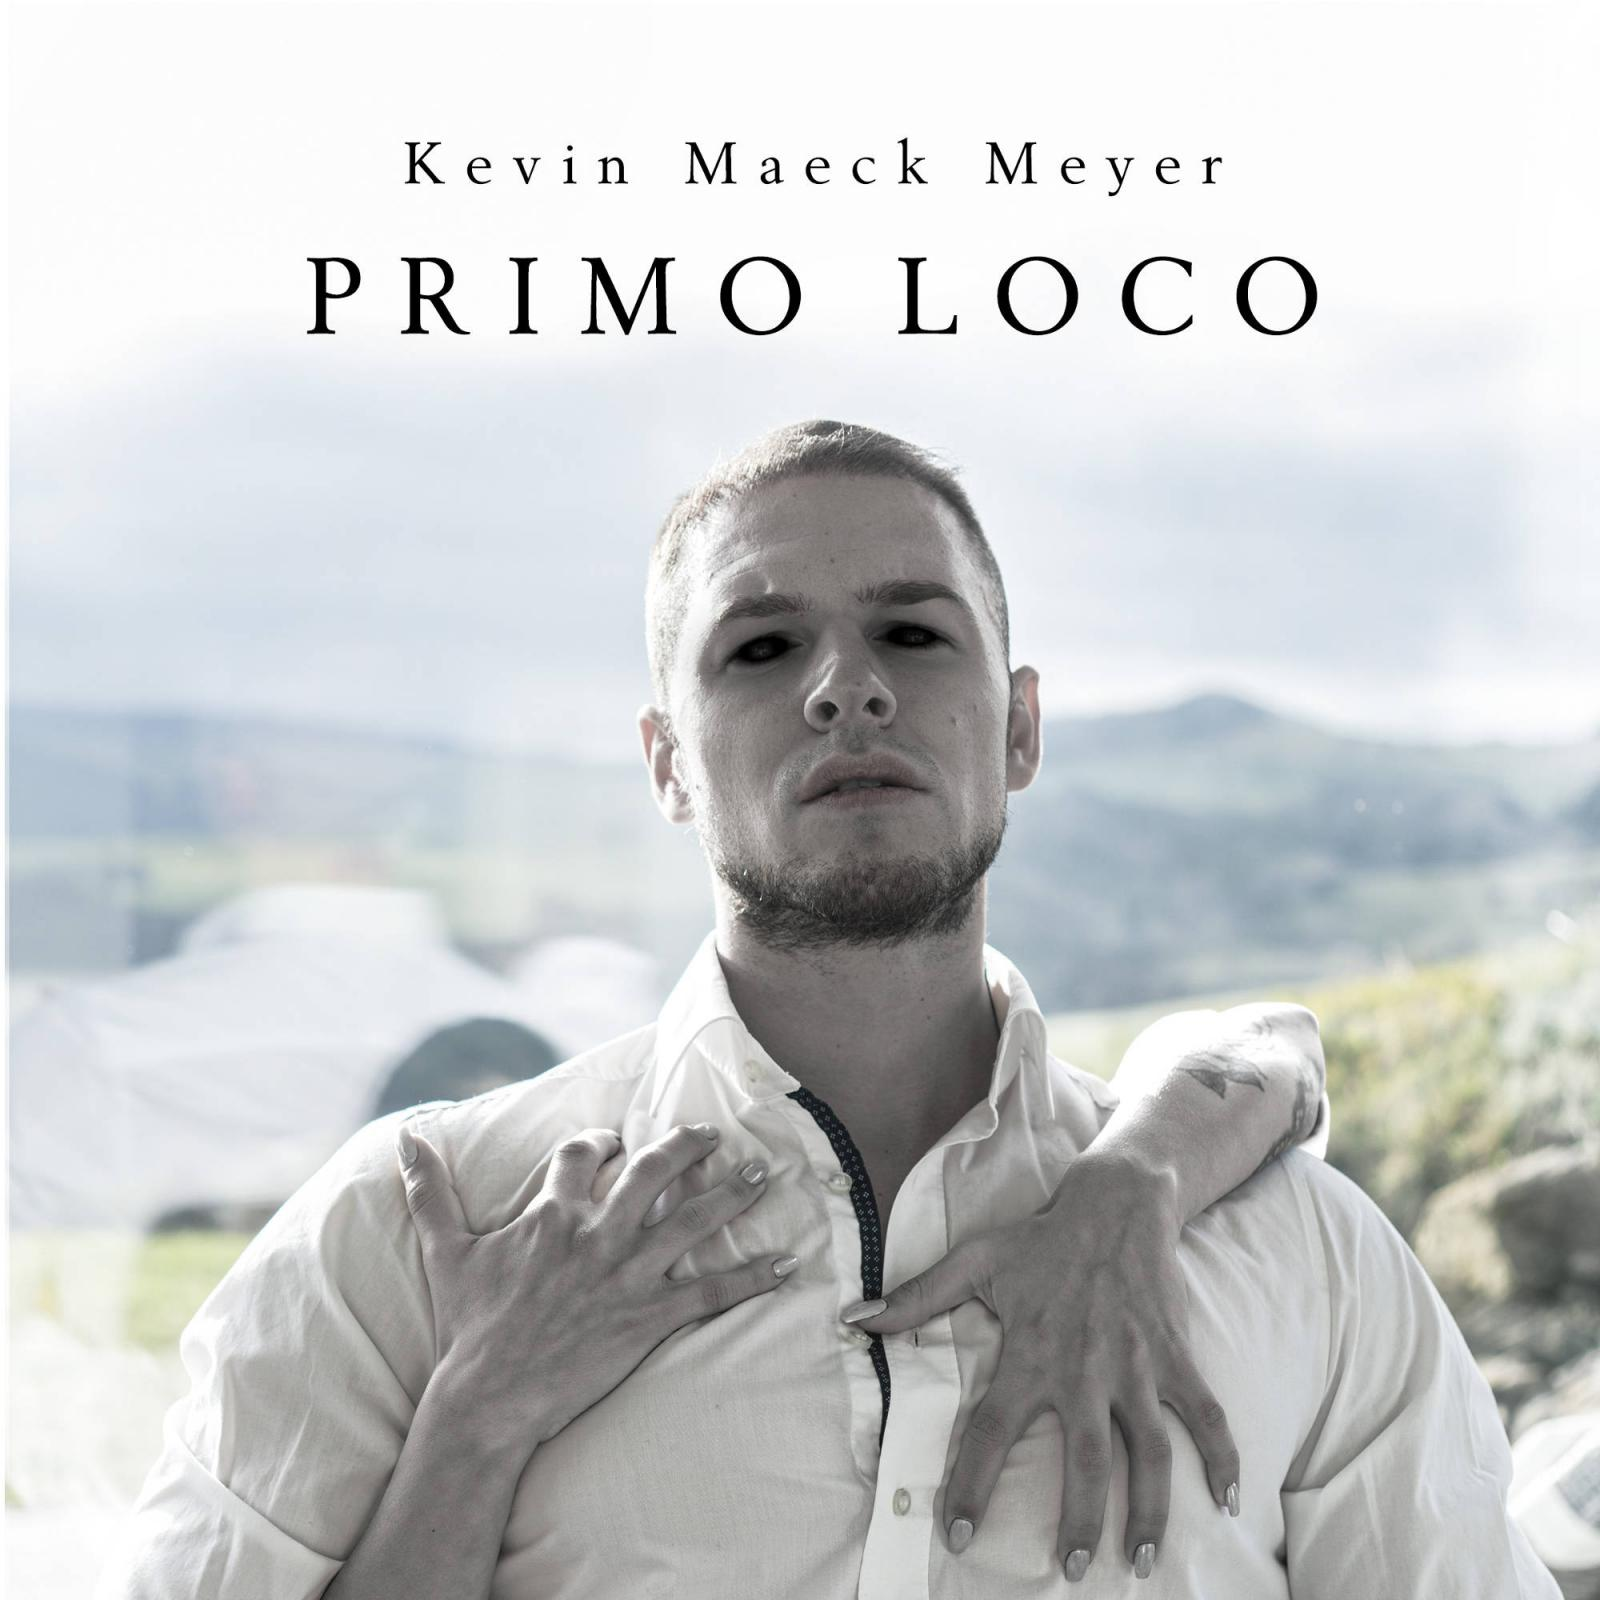 Upcoming: Kevin Maeck Meyer - Primo Loco